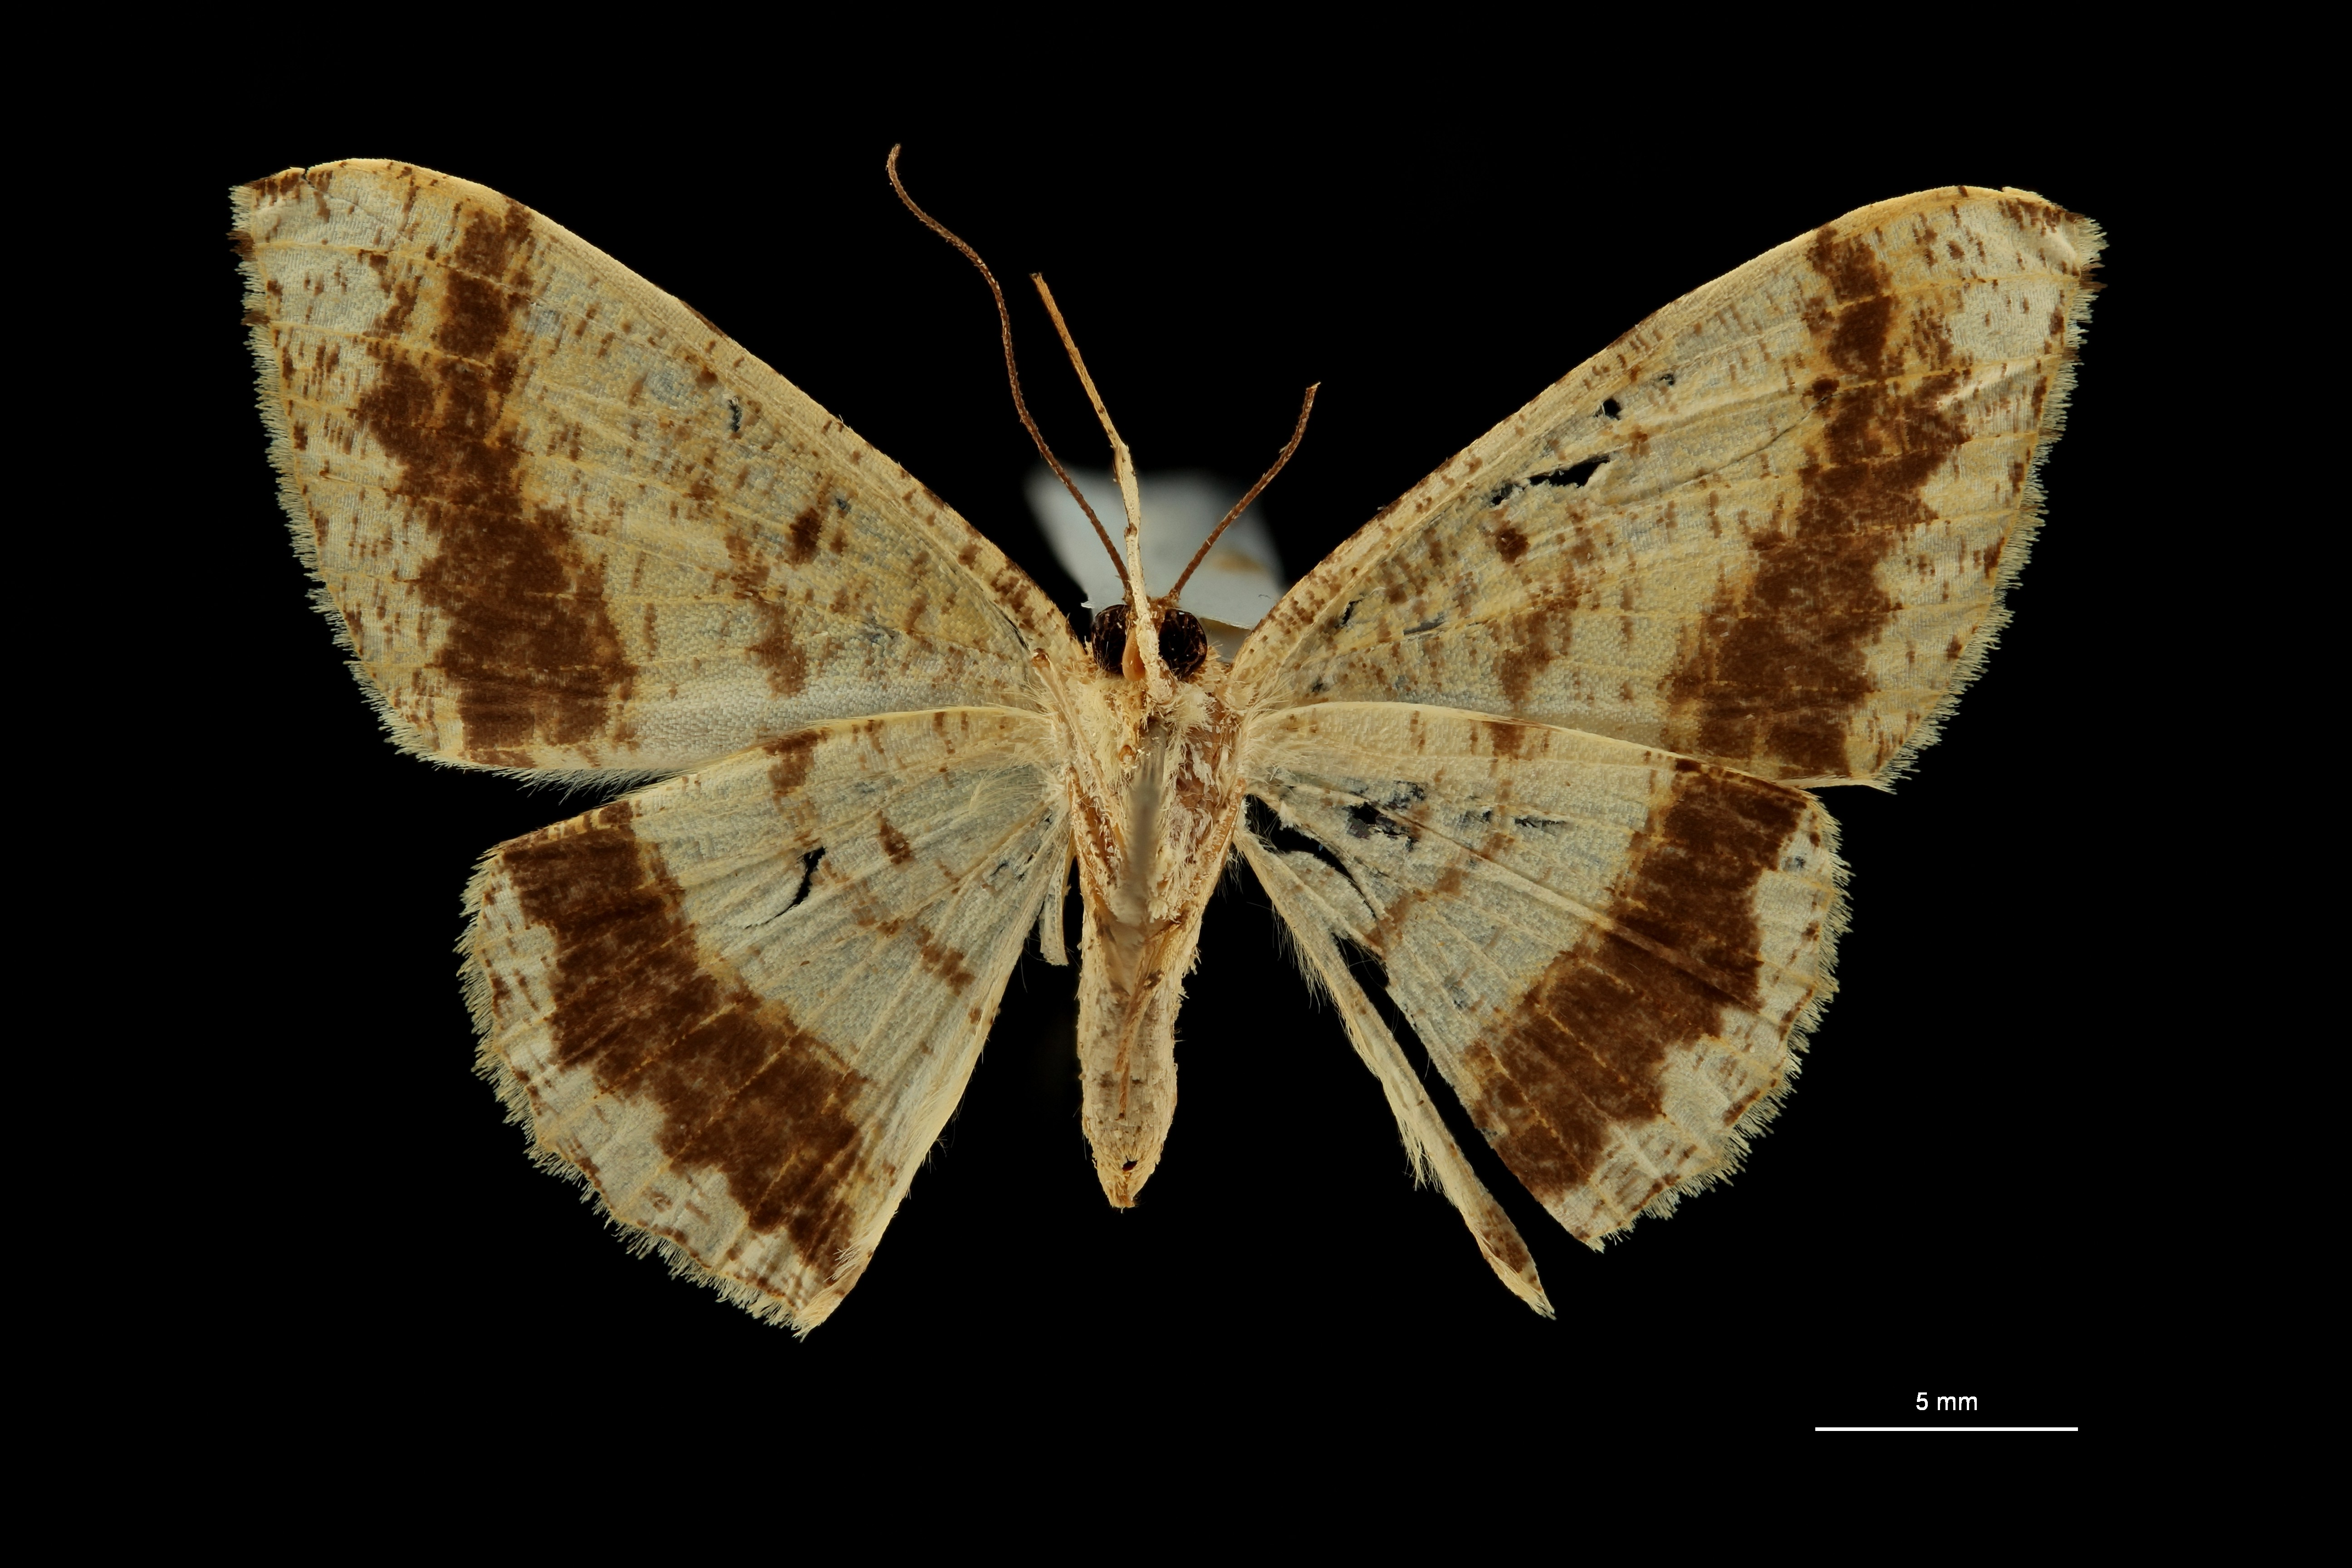 Luxiaria prouti pt V ZS PMax Scaled.jpeg